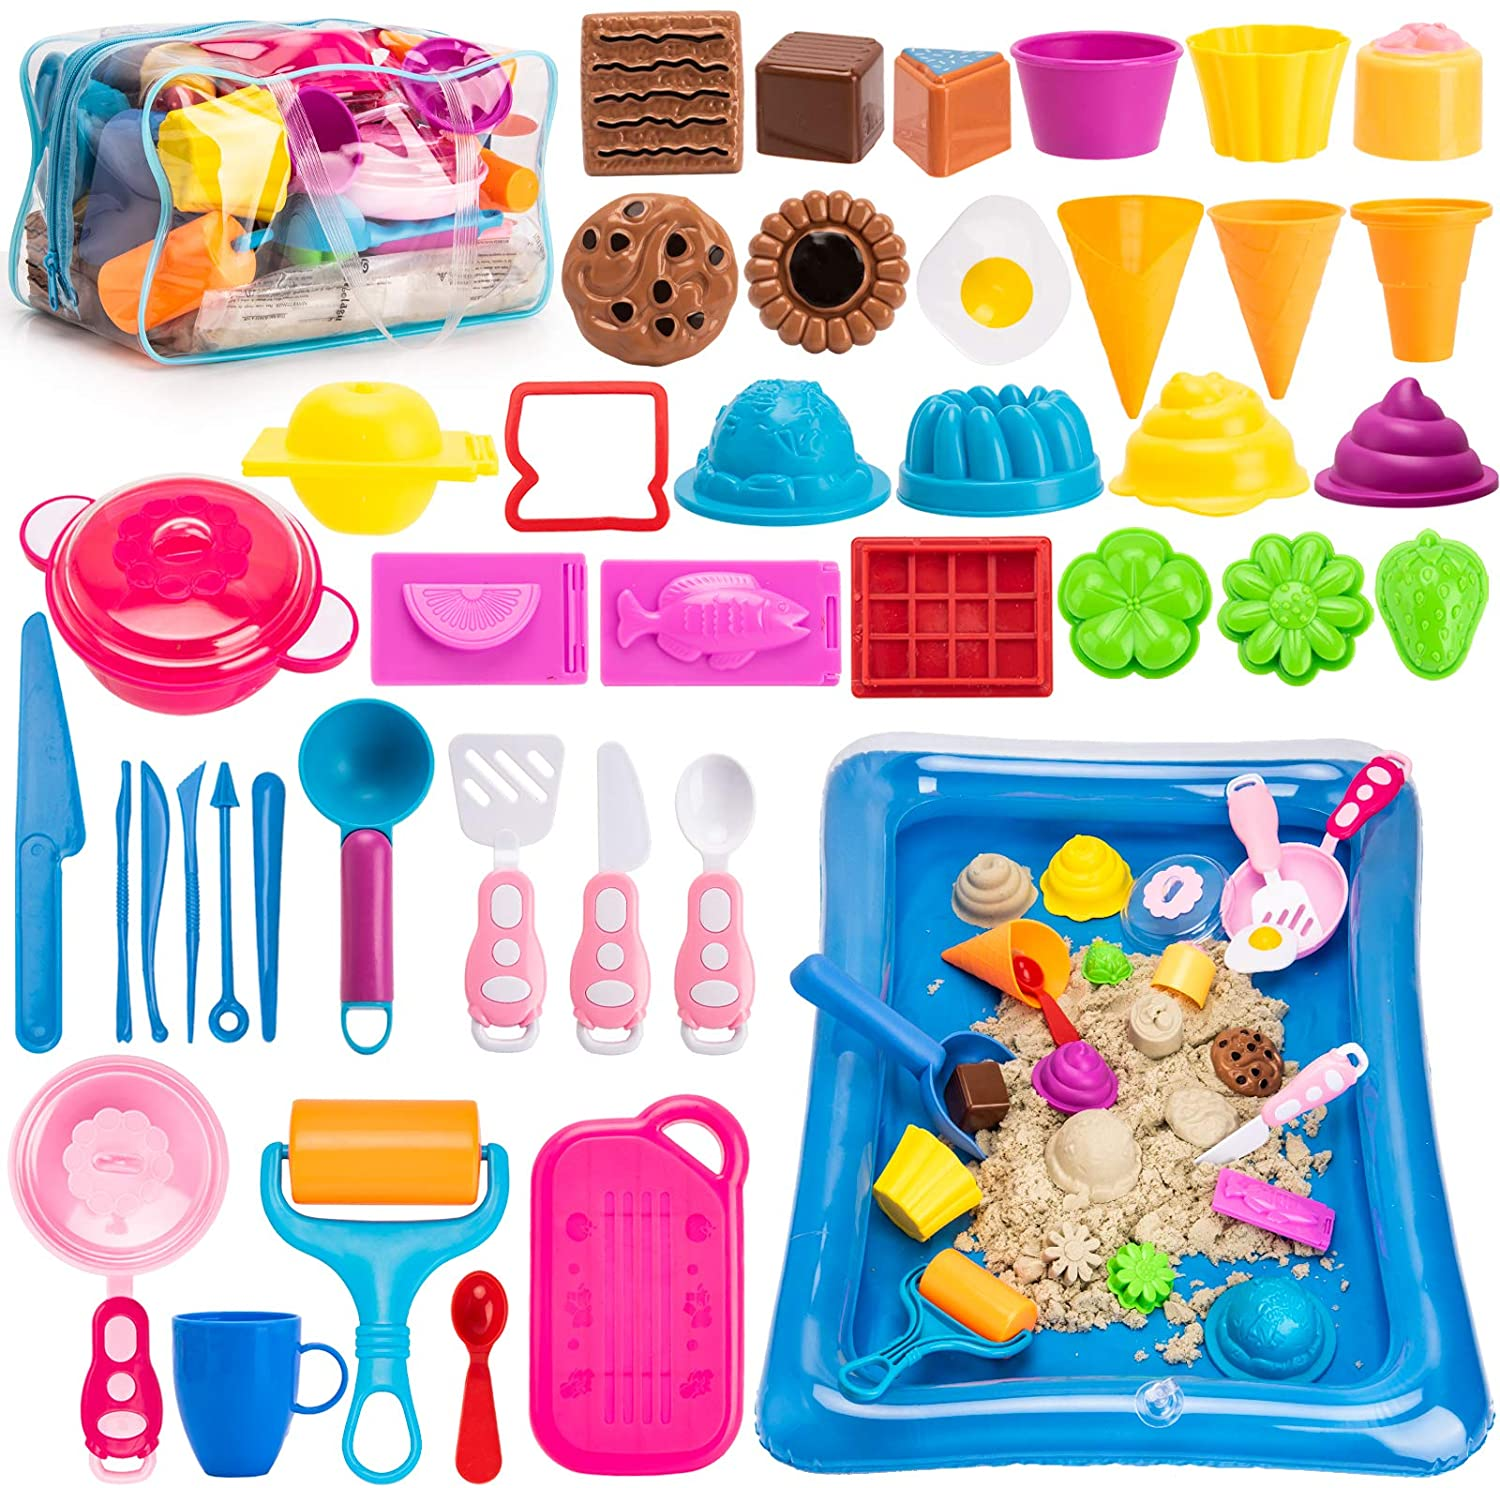 Kinetic Sand Molds Tools, Kitchen Toys, Sand Tray and Storage Bag, 44PCS Sandbox Toys Set for Toddlers and Kids